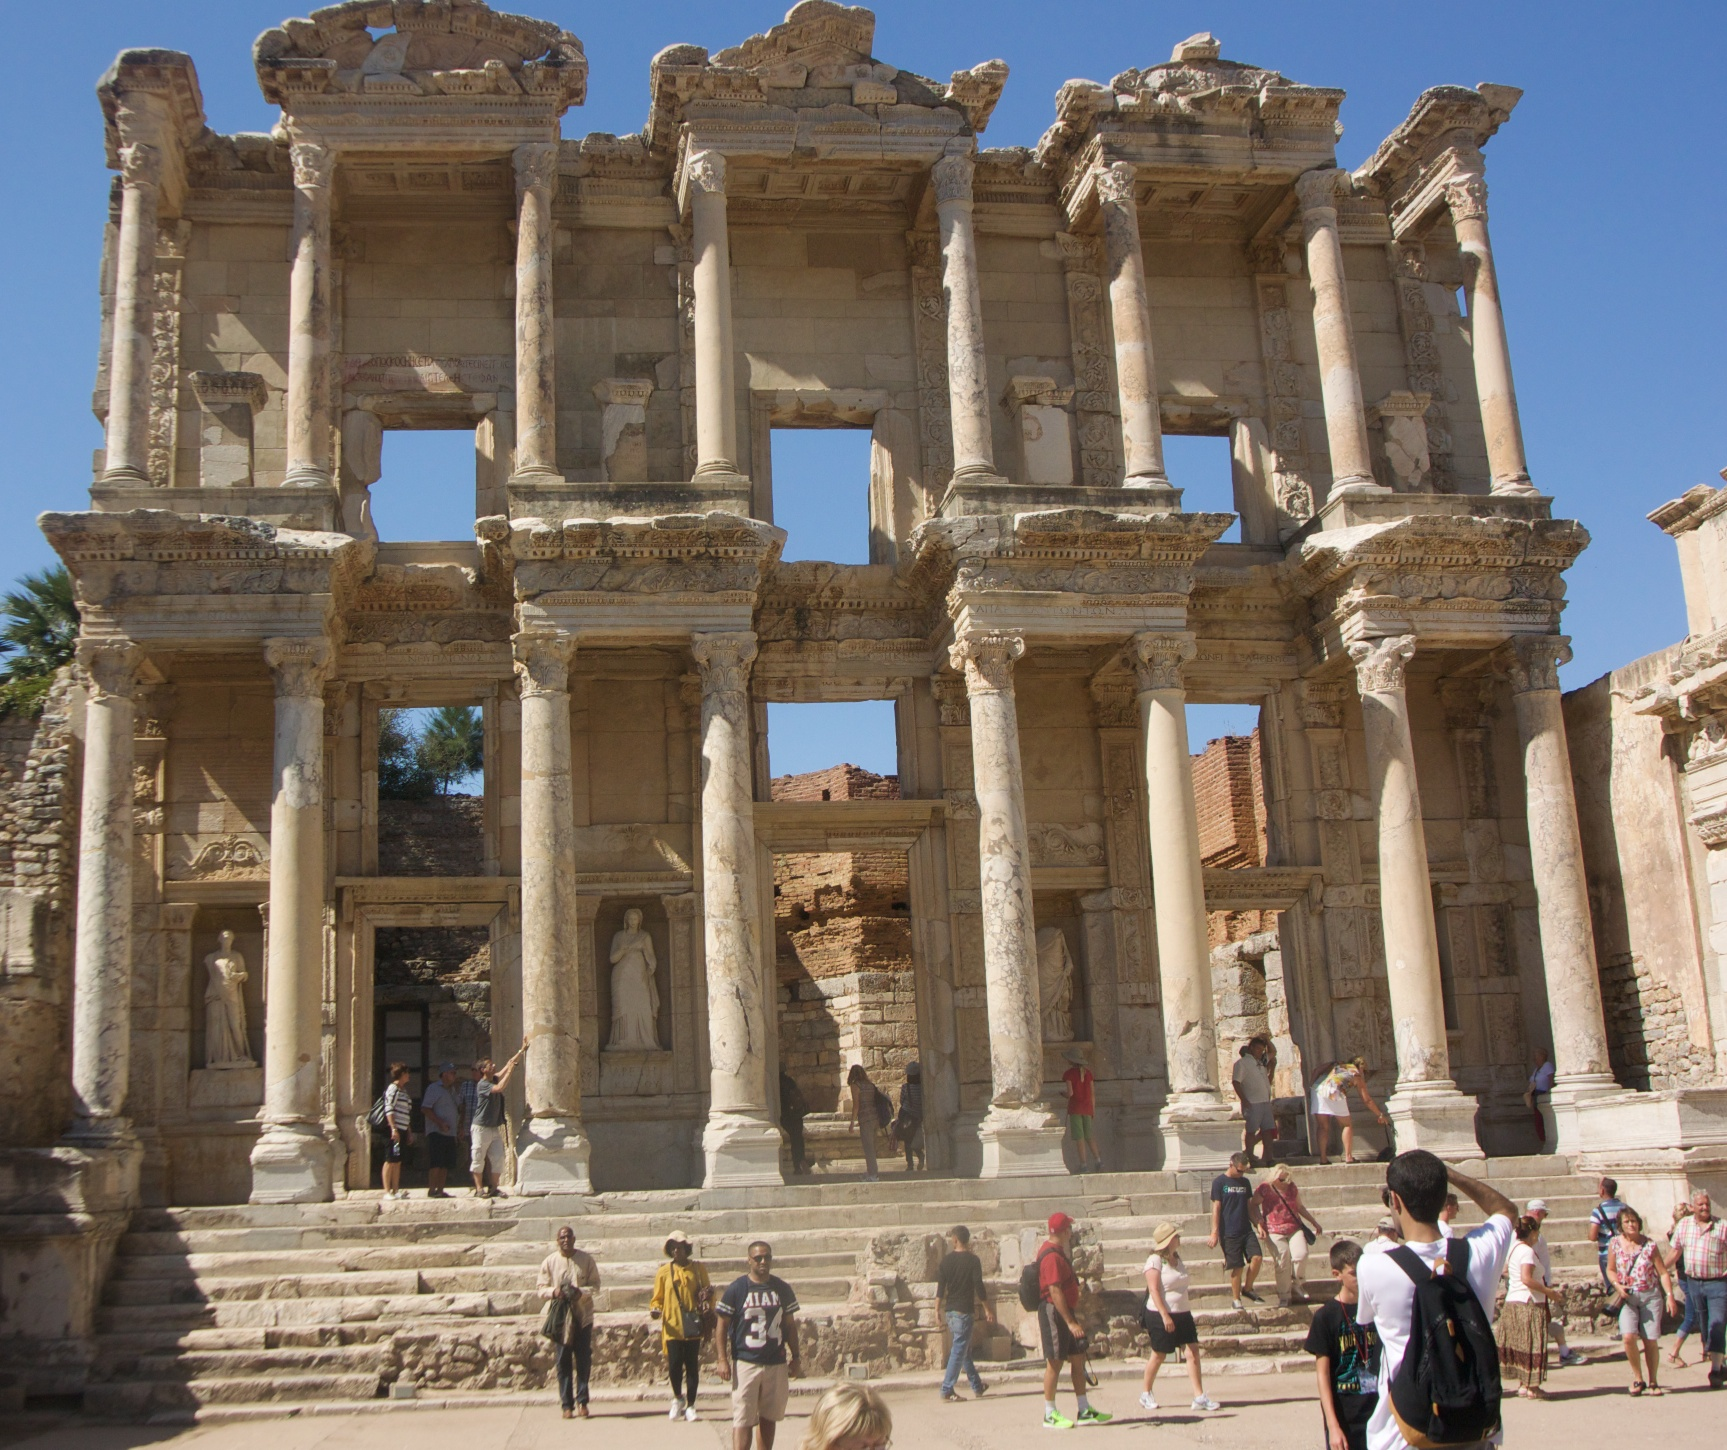 The facade of the Library of Celsus